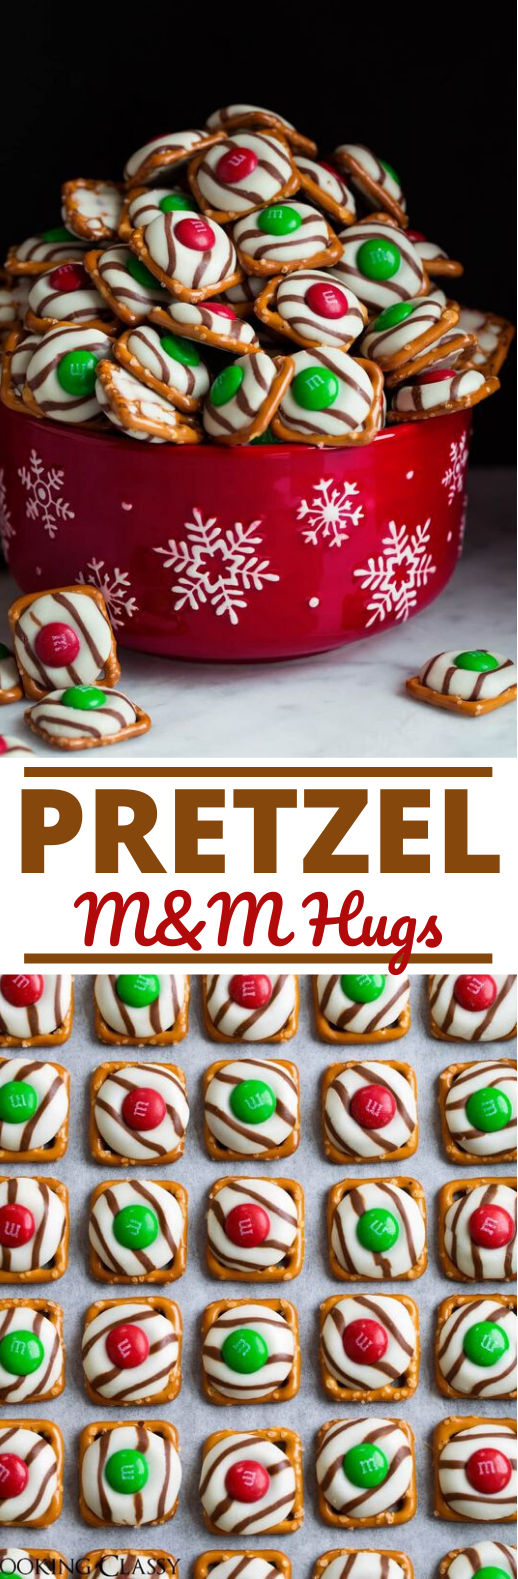 Pretzel M&M Hugs #desserts #cookies #candy #christmas #holiday